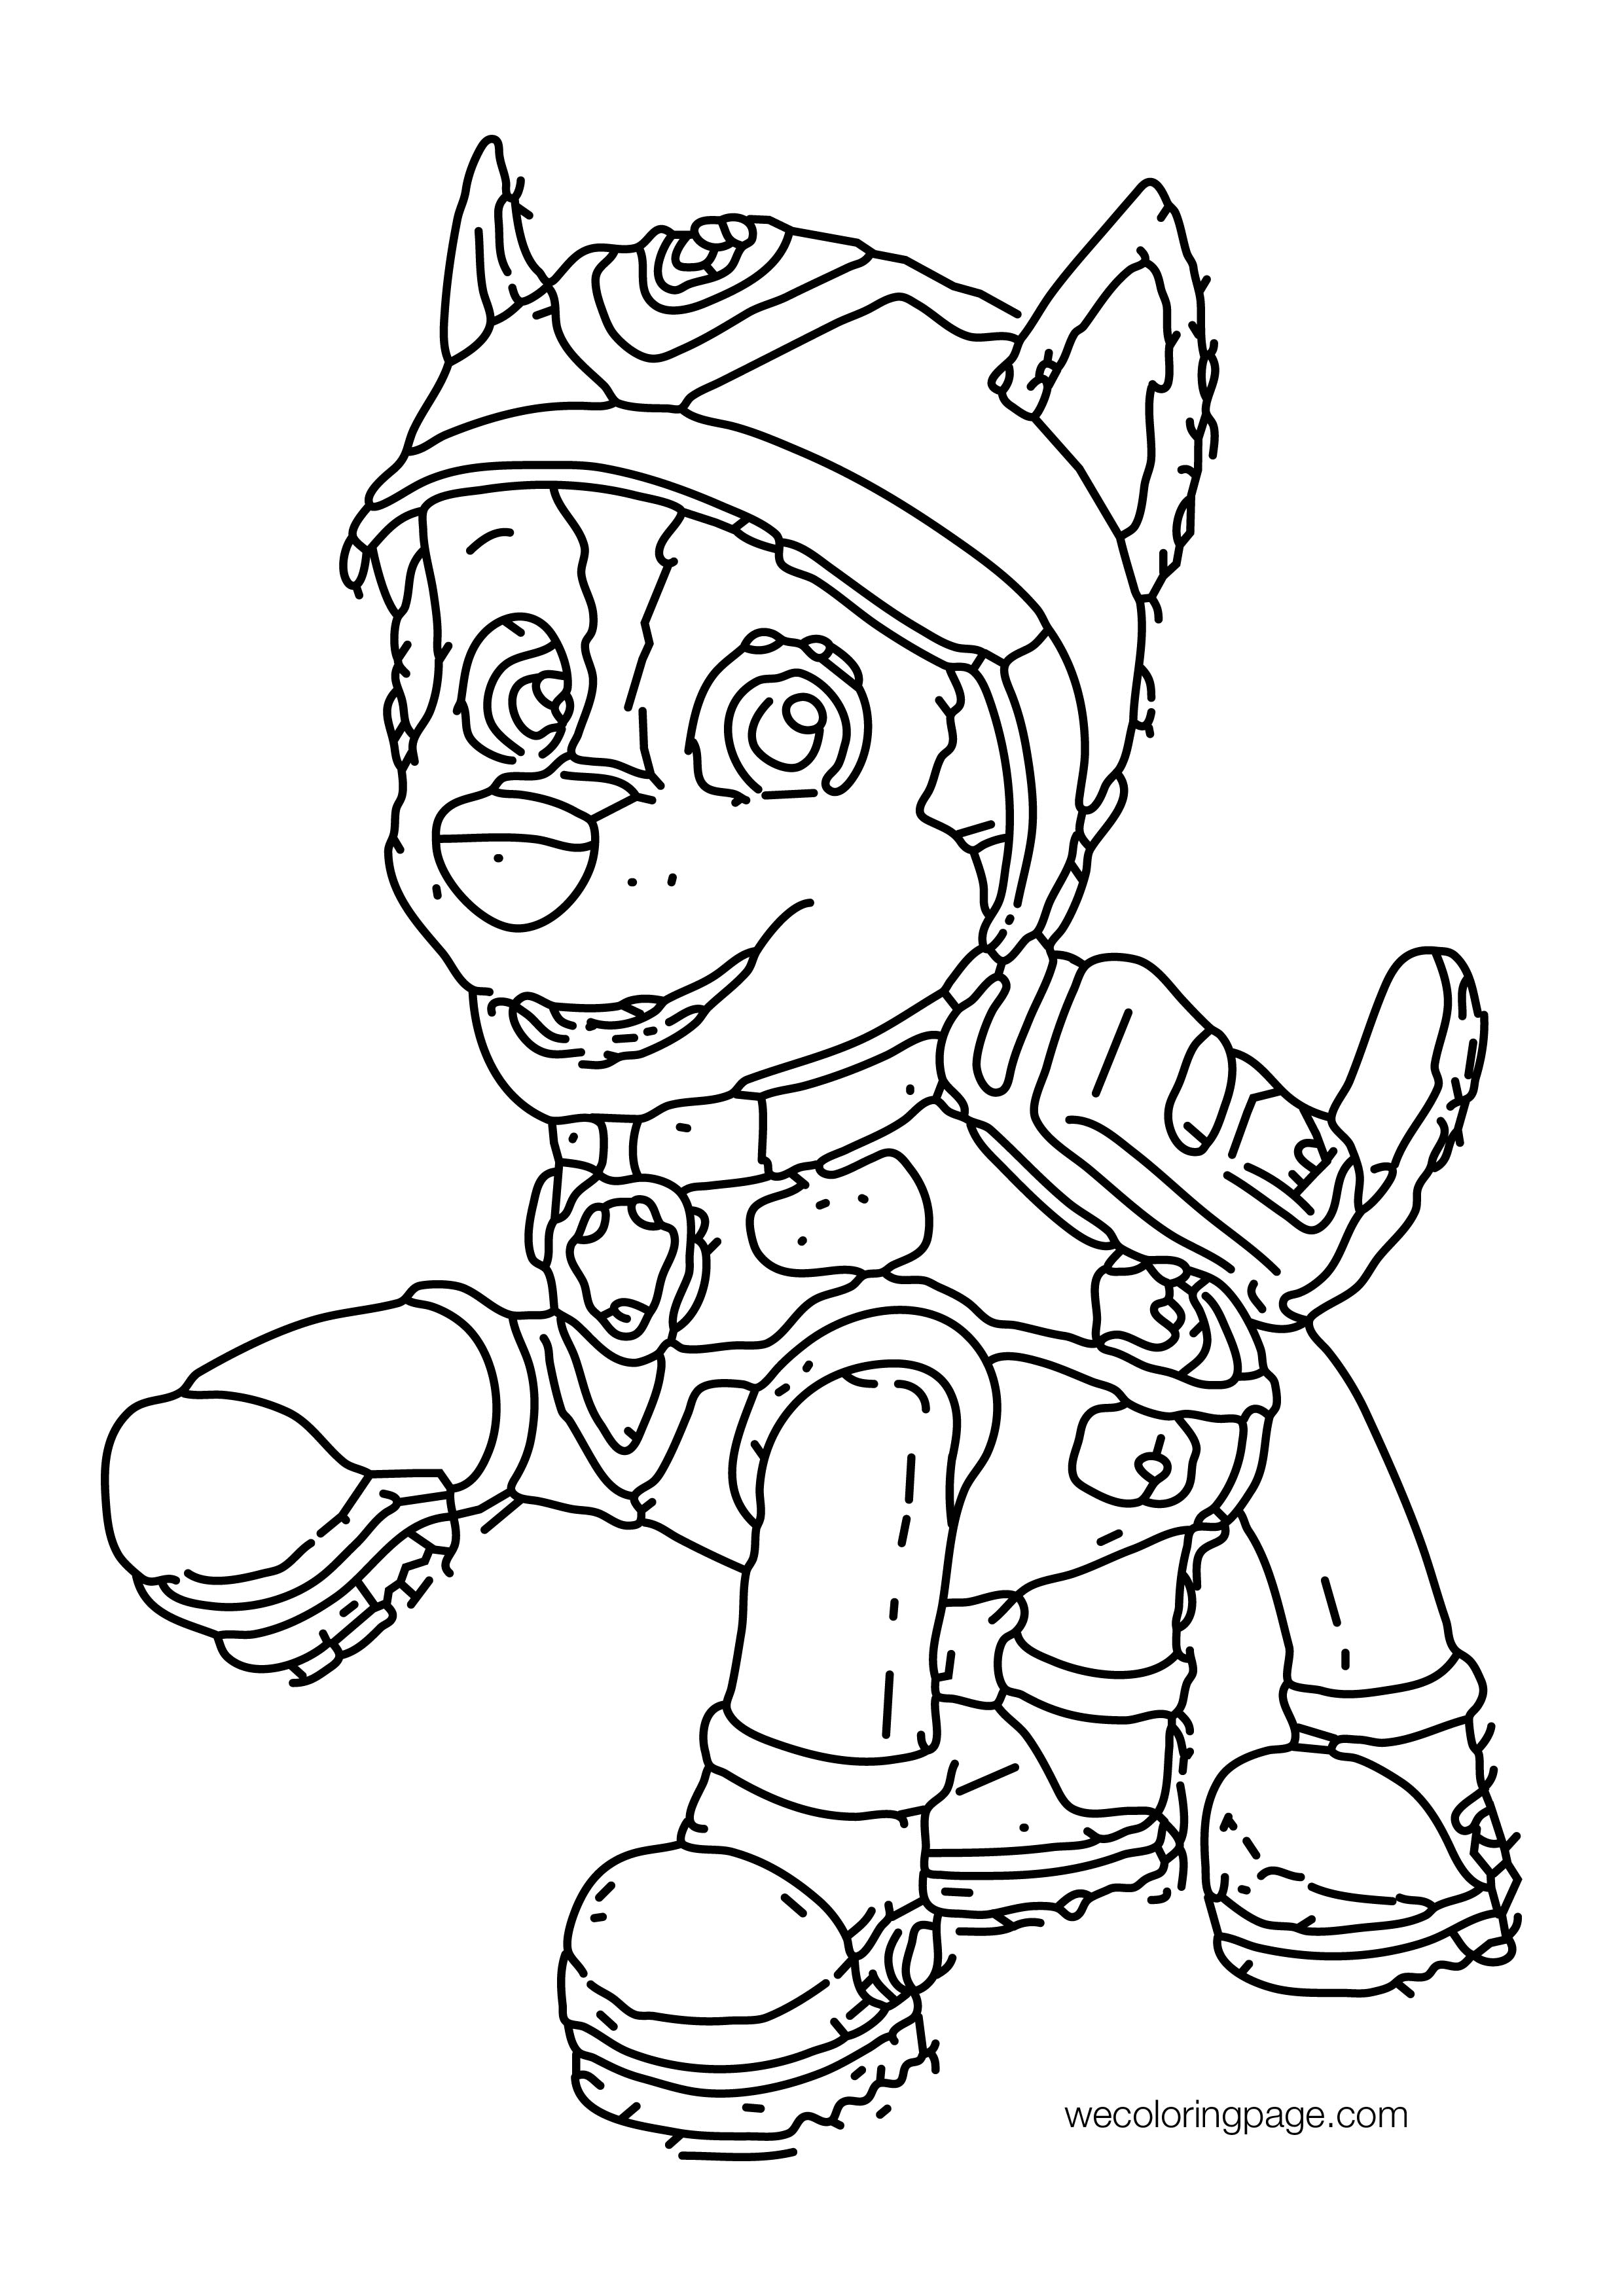 Paw Patrol Line Outline Coloring Page Wecoloringpage Com